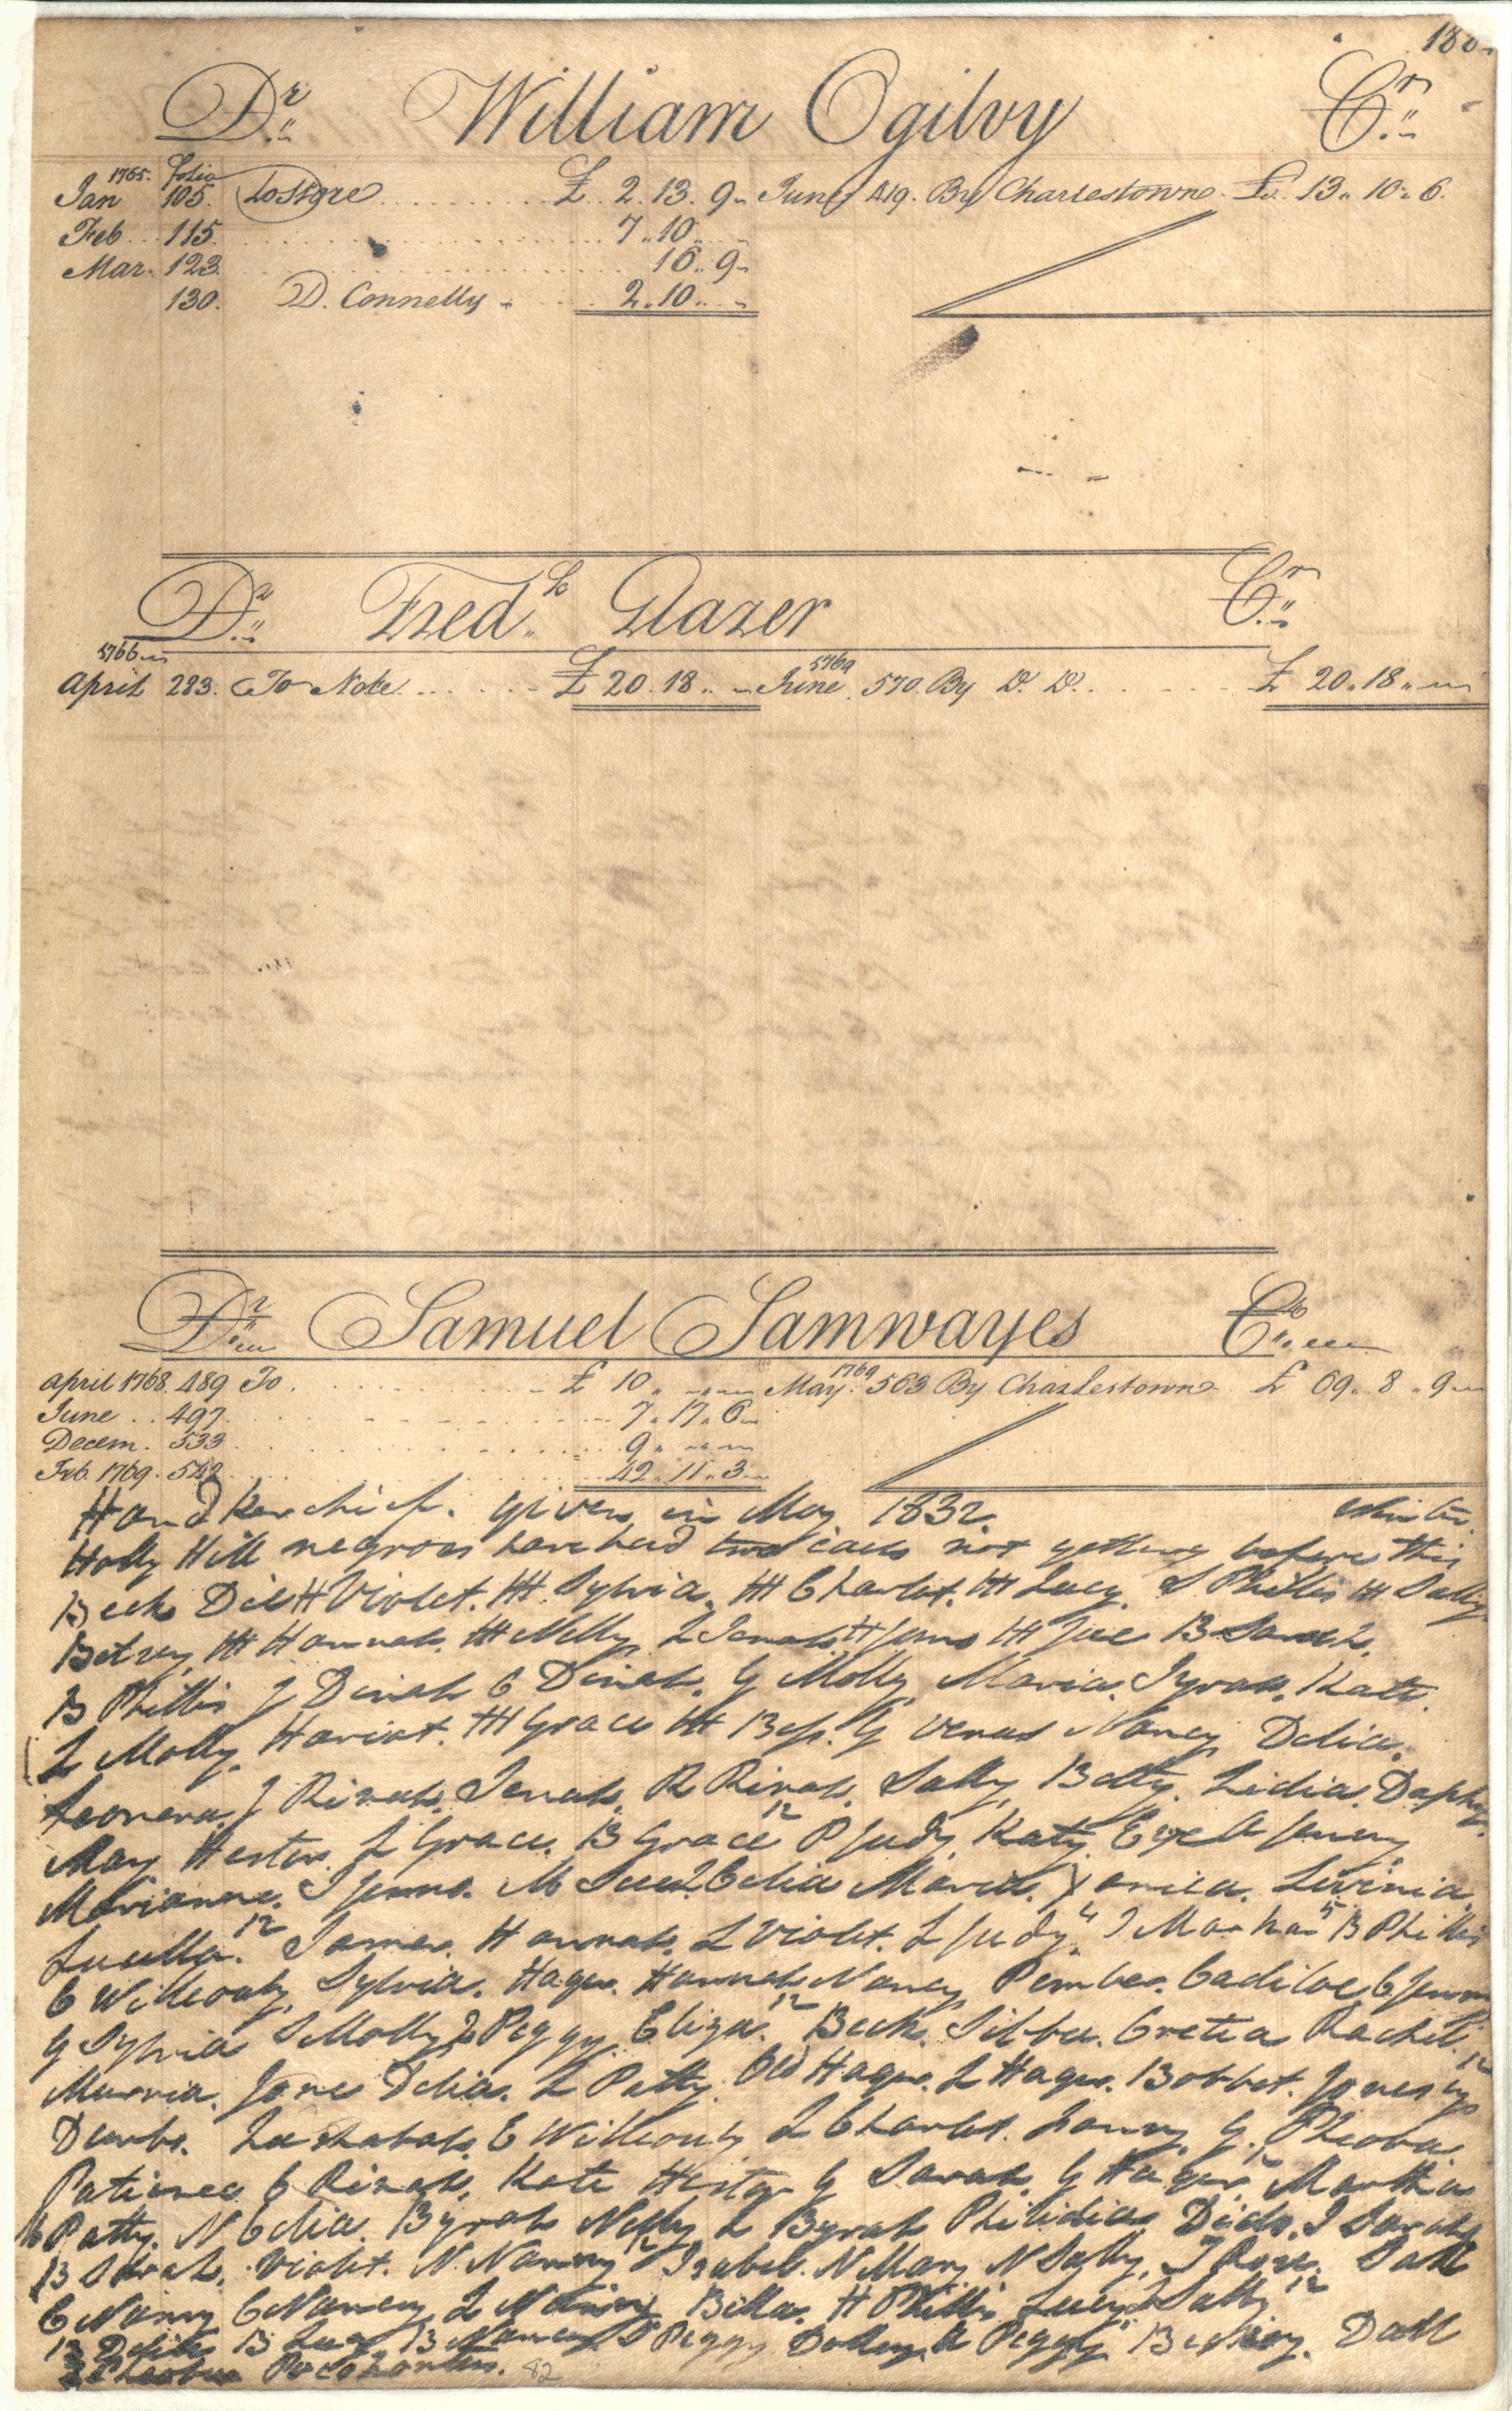 Plowden Weston's Business Ledger, page 188